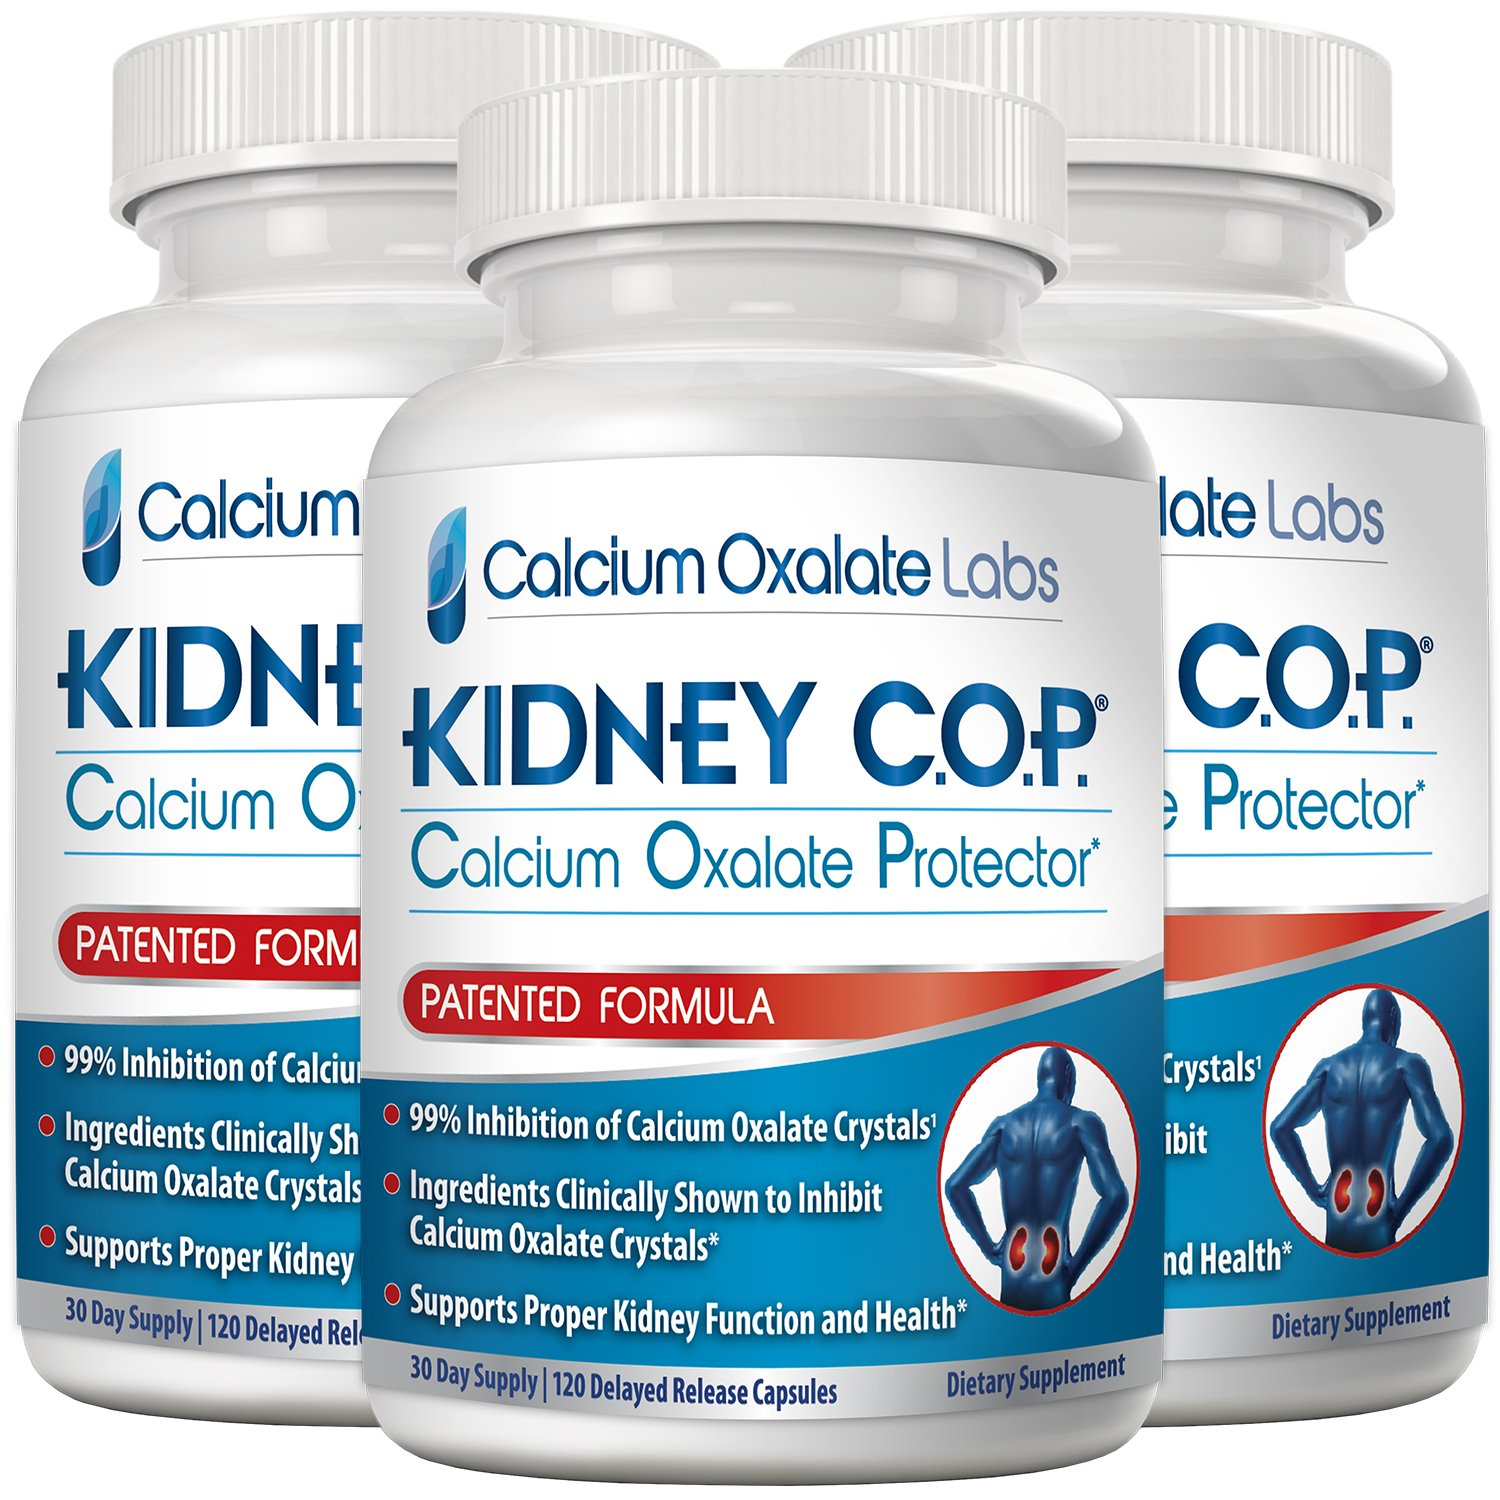 Kidney COP Calcium Oxalate Protector 120 Capsules, Patented Kidney Support for Calcium Oxalate Crystals, Helps Stops Recurrence of Stones, Stronger Than Chanca Piedra Stone Breaker Supplements 3 Pack